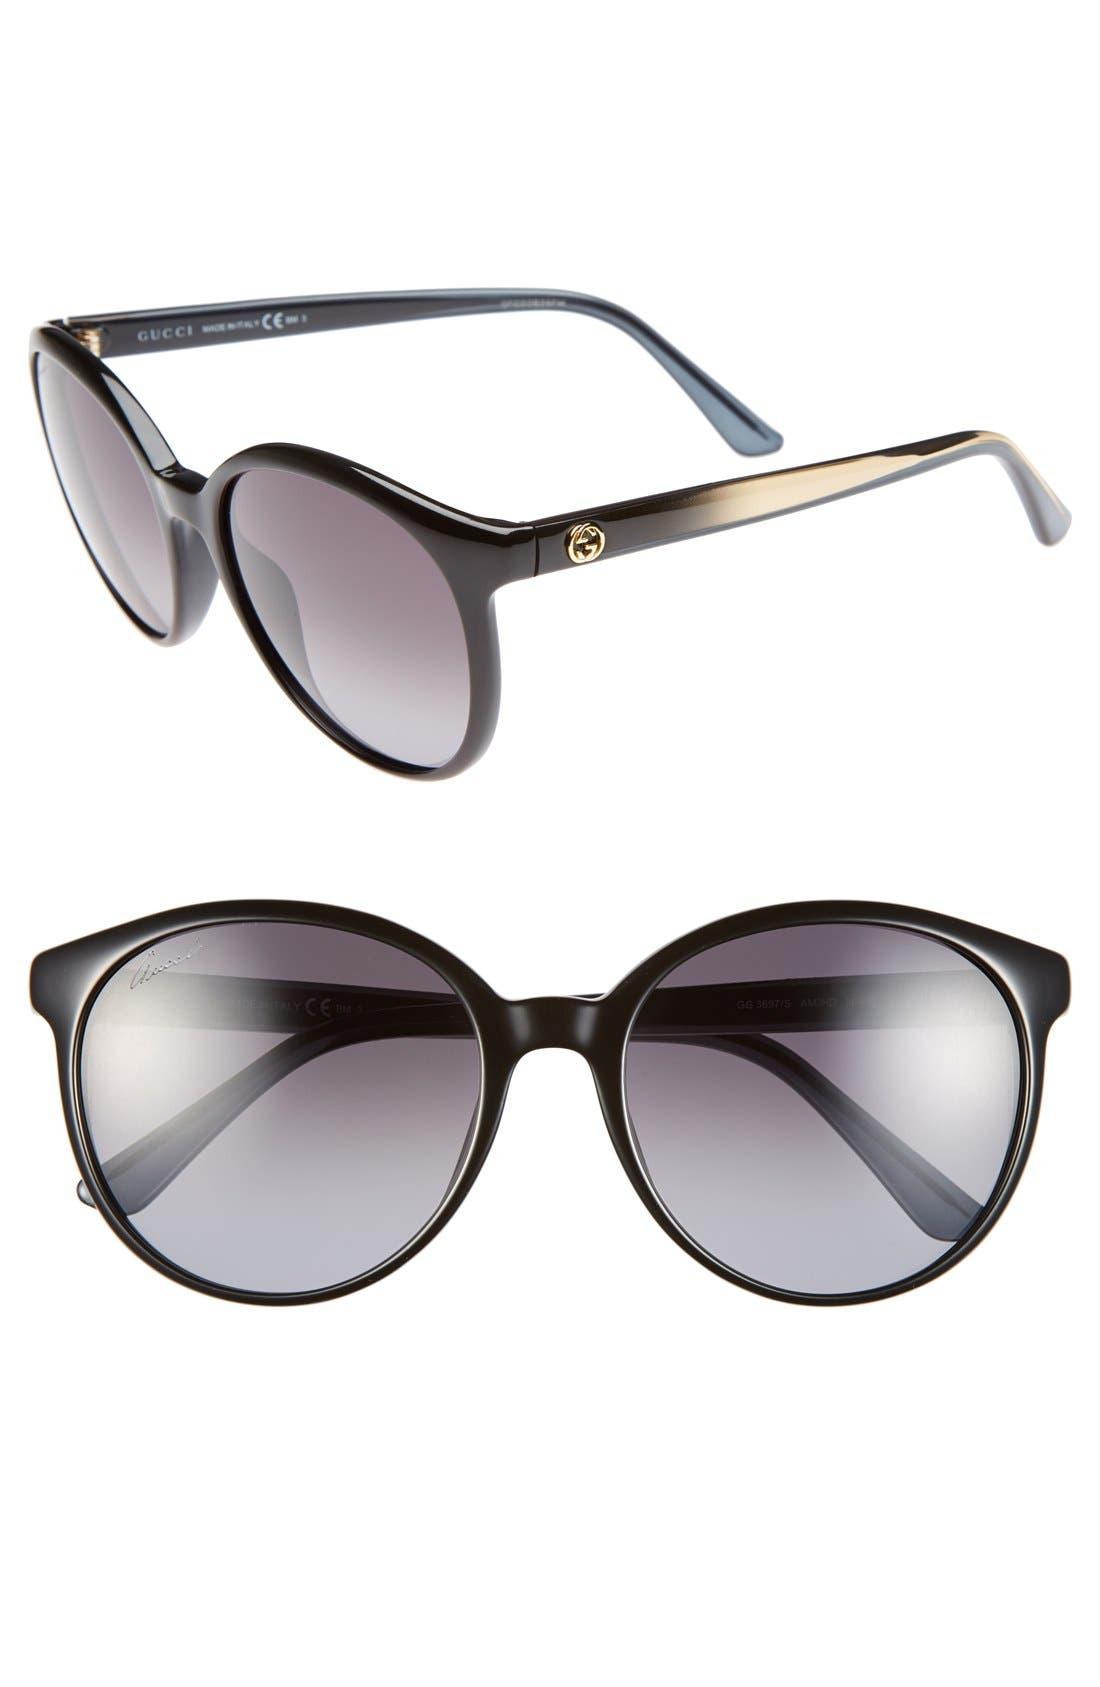 Main Image - Gucci 56mm Retro Sunglasses